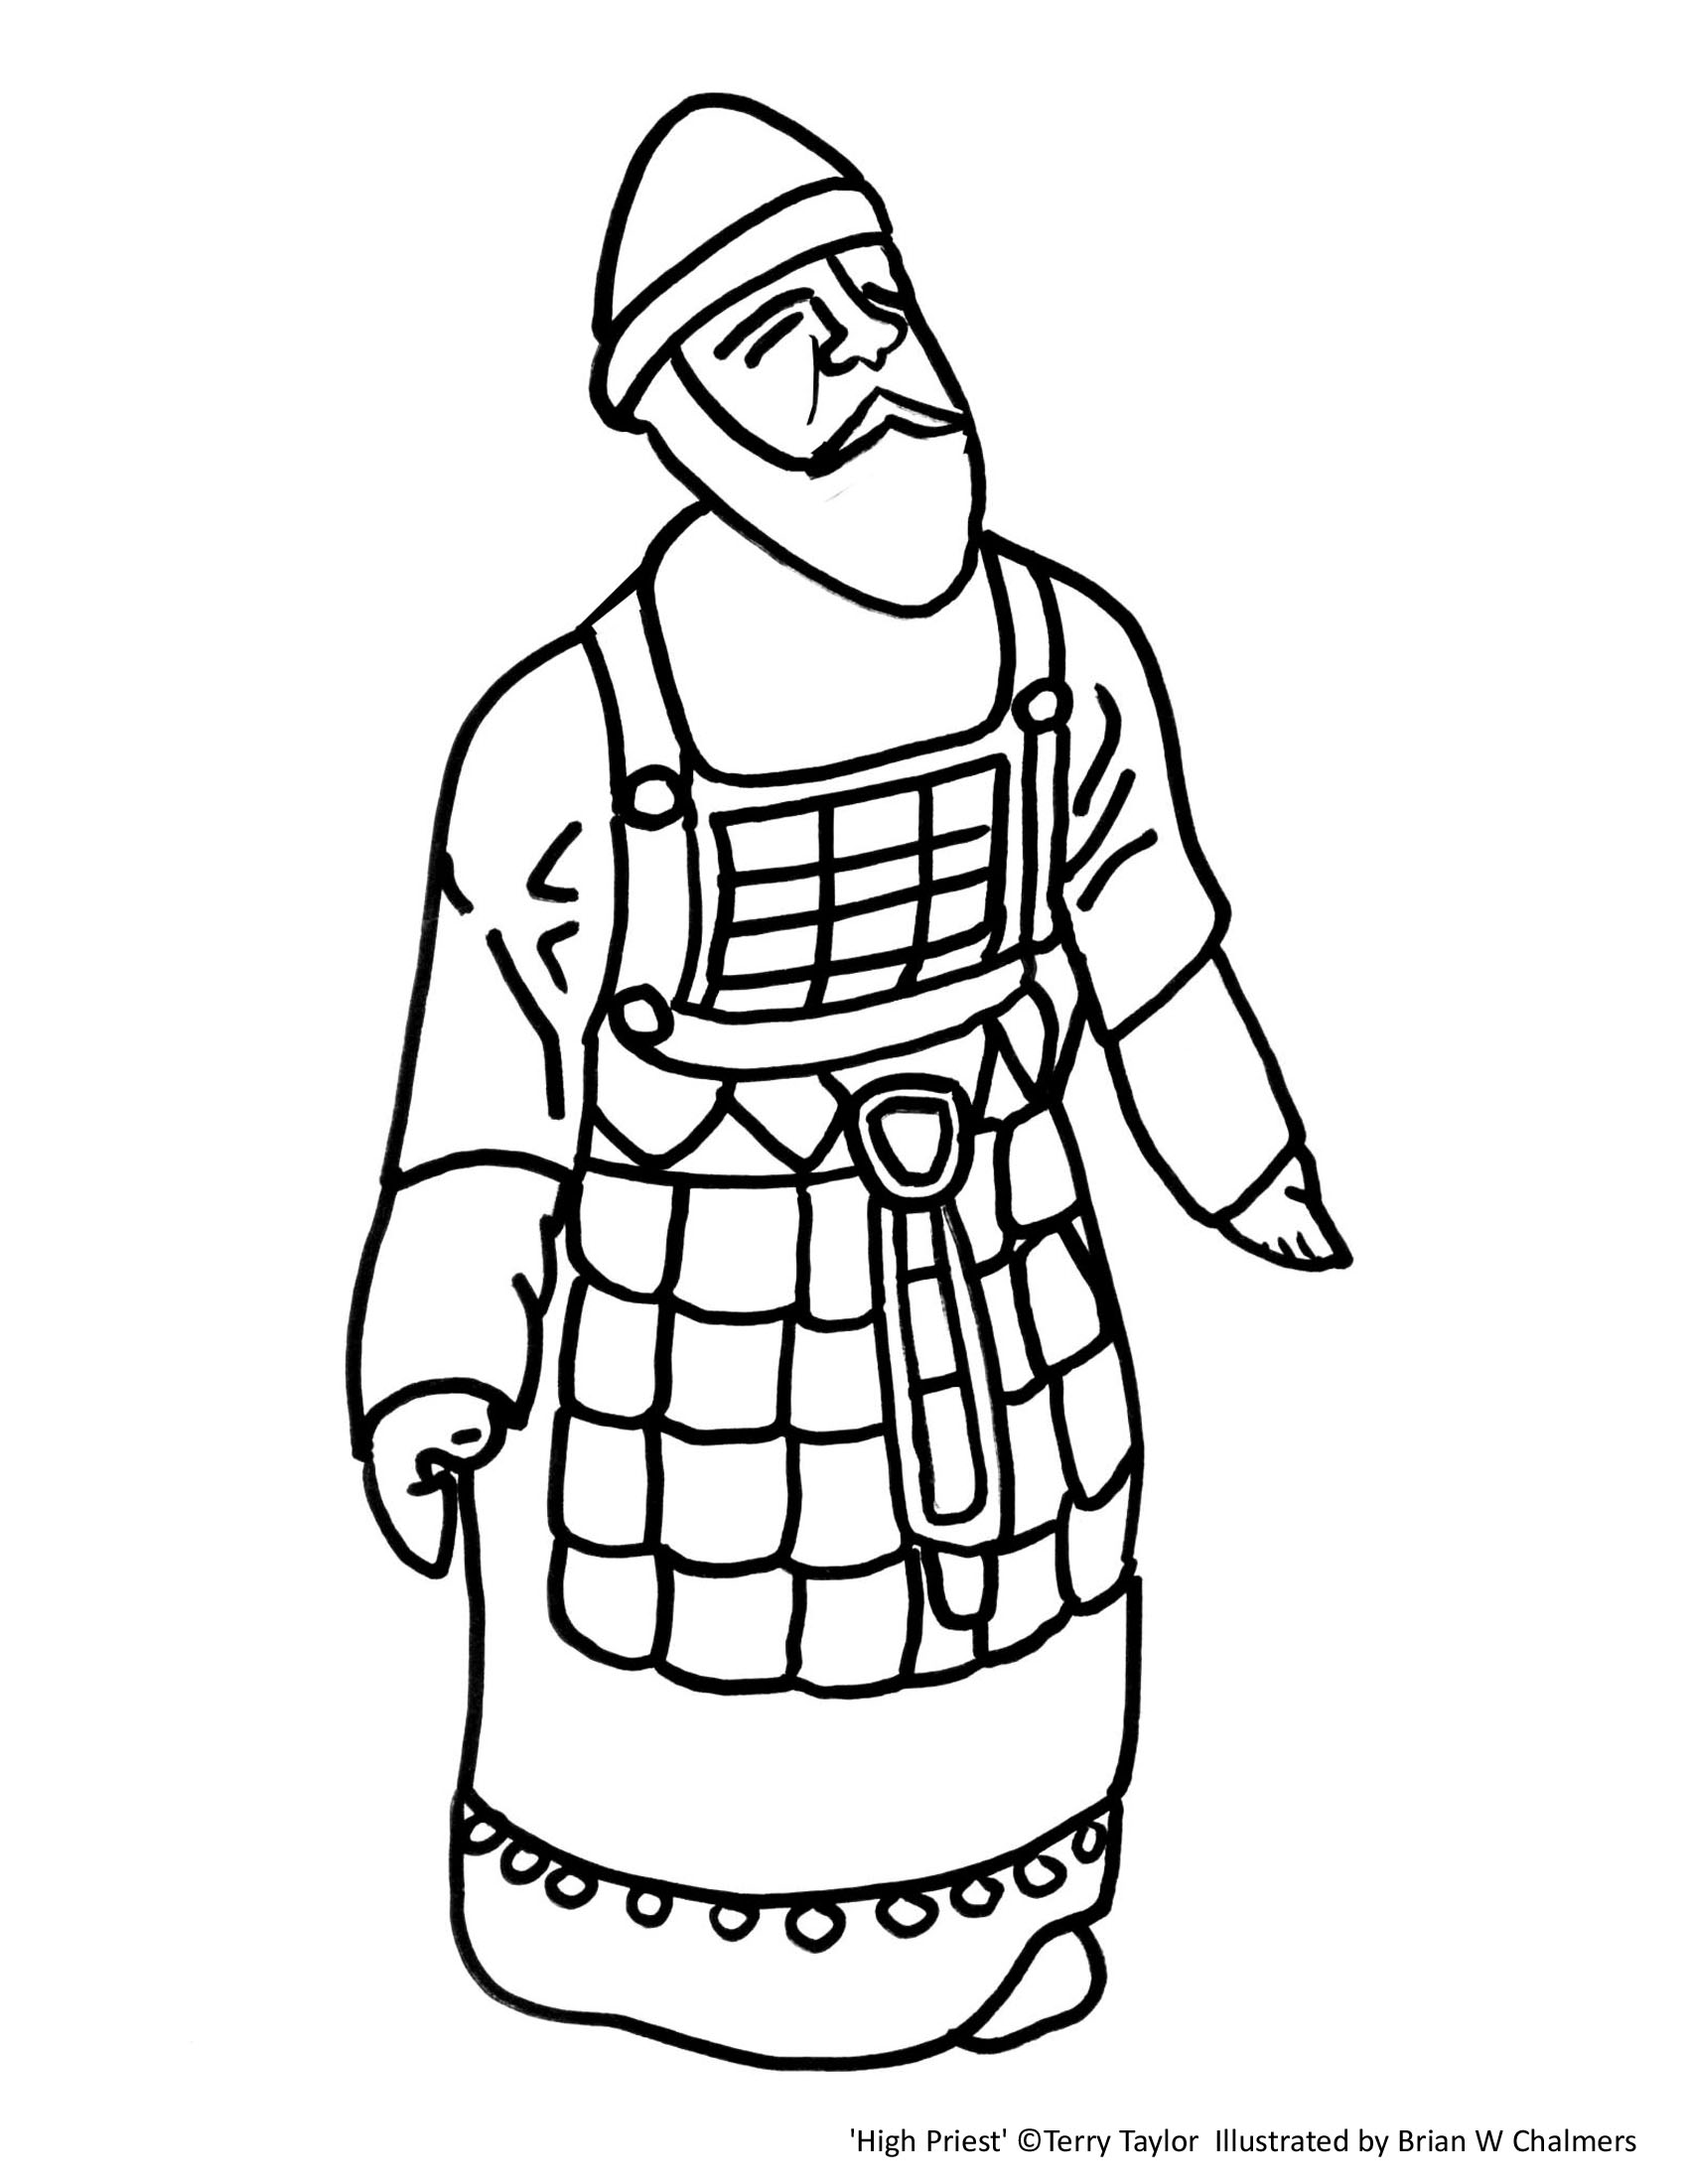 high priest coloring pages - photo#1